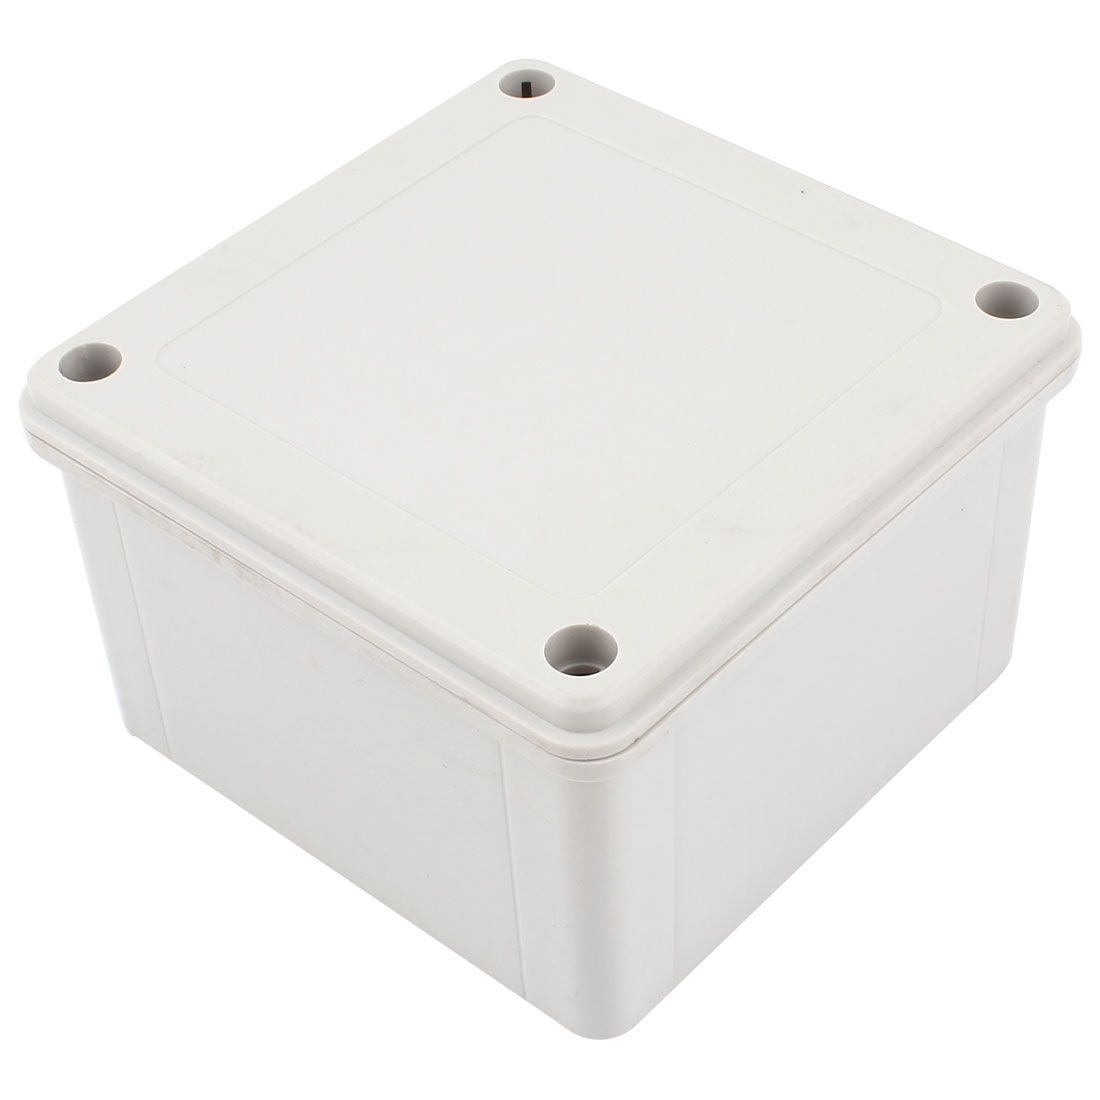 145mm x 145mm x 80mm Waterproof Plastic DIY Junction Box Power Protection Case